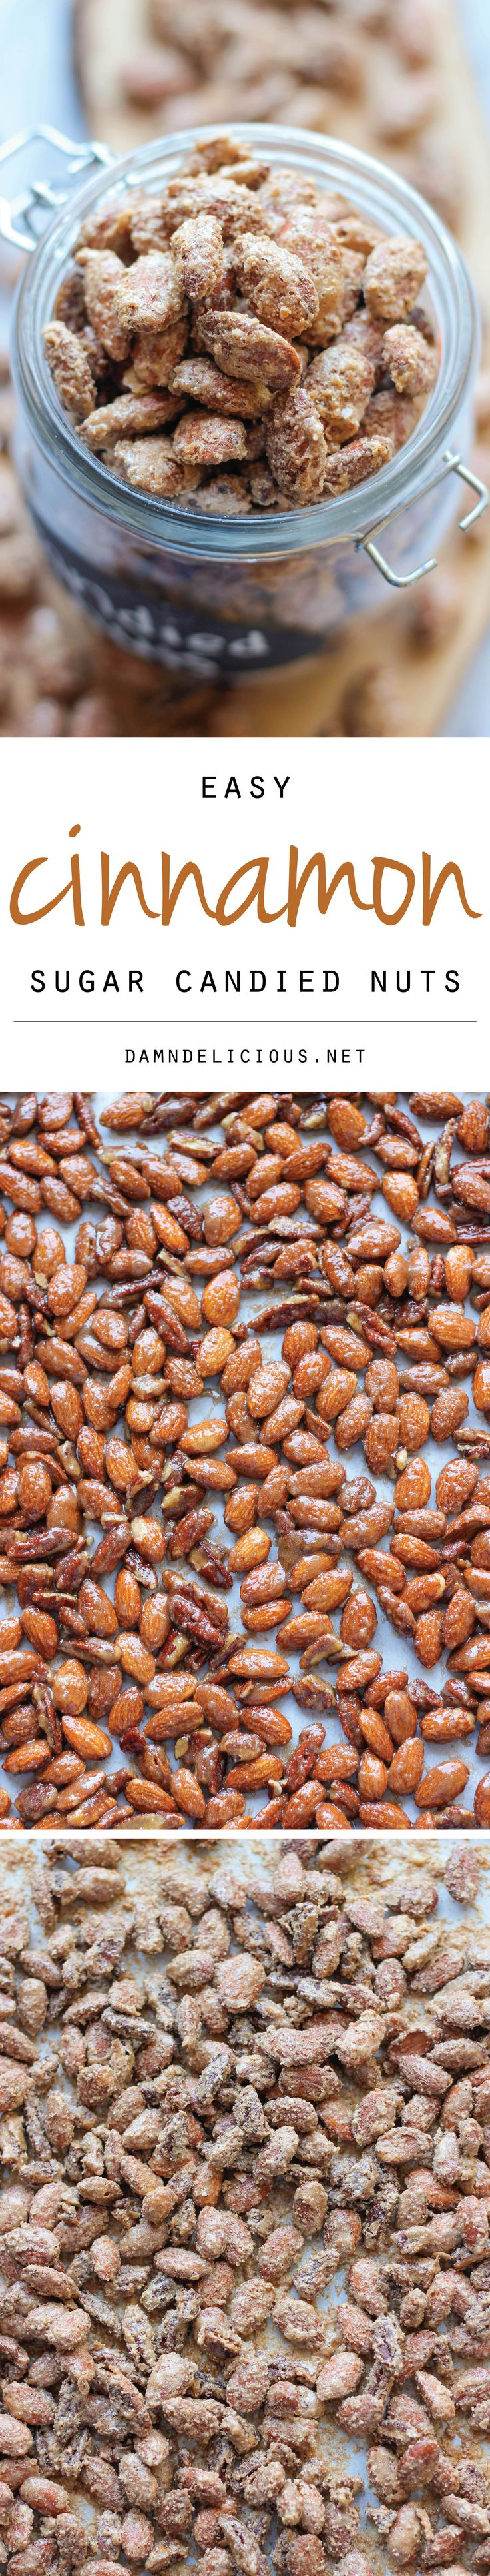 Cinnamon Sugar Candied Nuts - You won't believe how easy this is to make, and it's completely addictive!